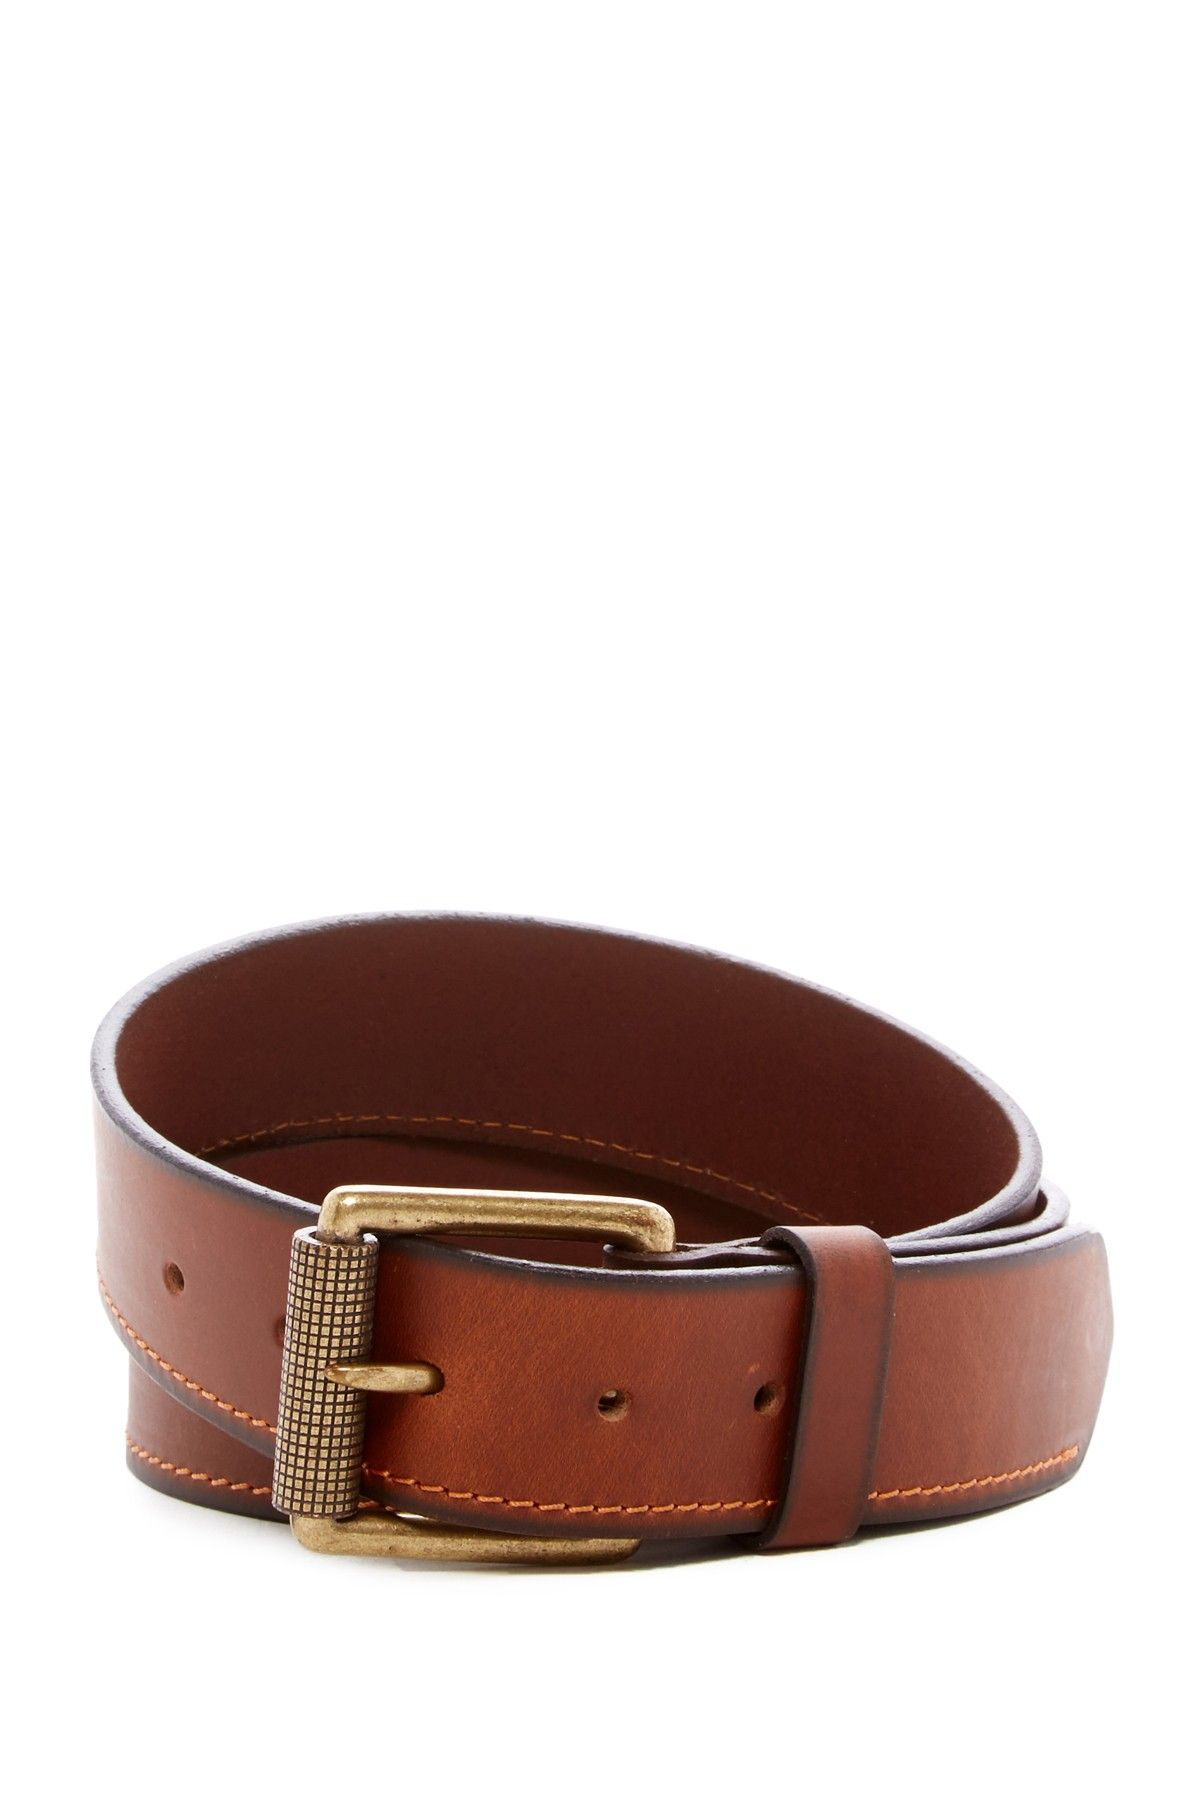 allen edmonds belt nordstrom rack the best belt 2017